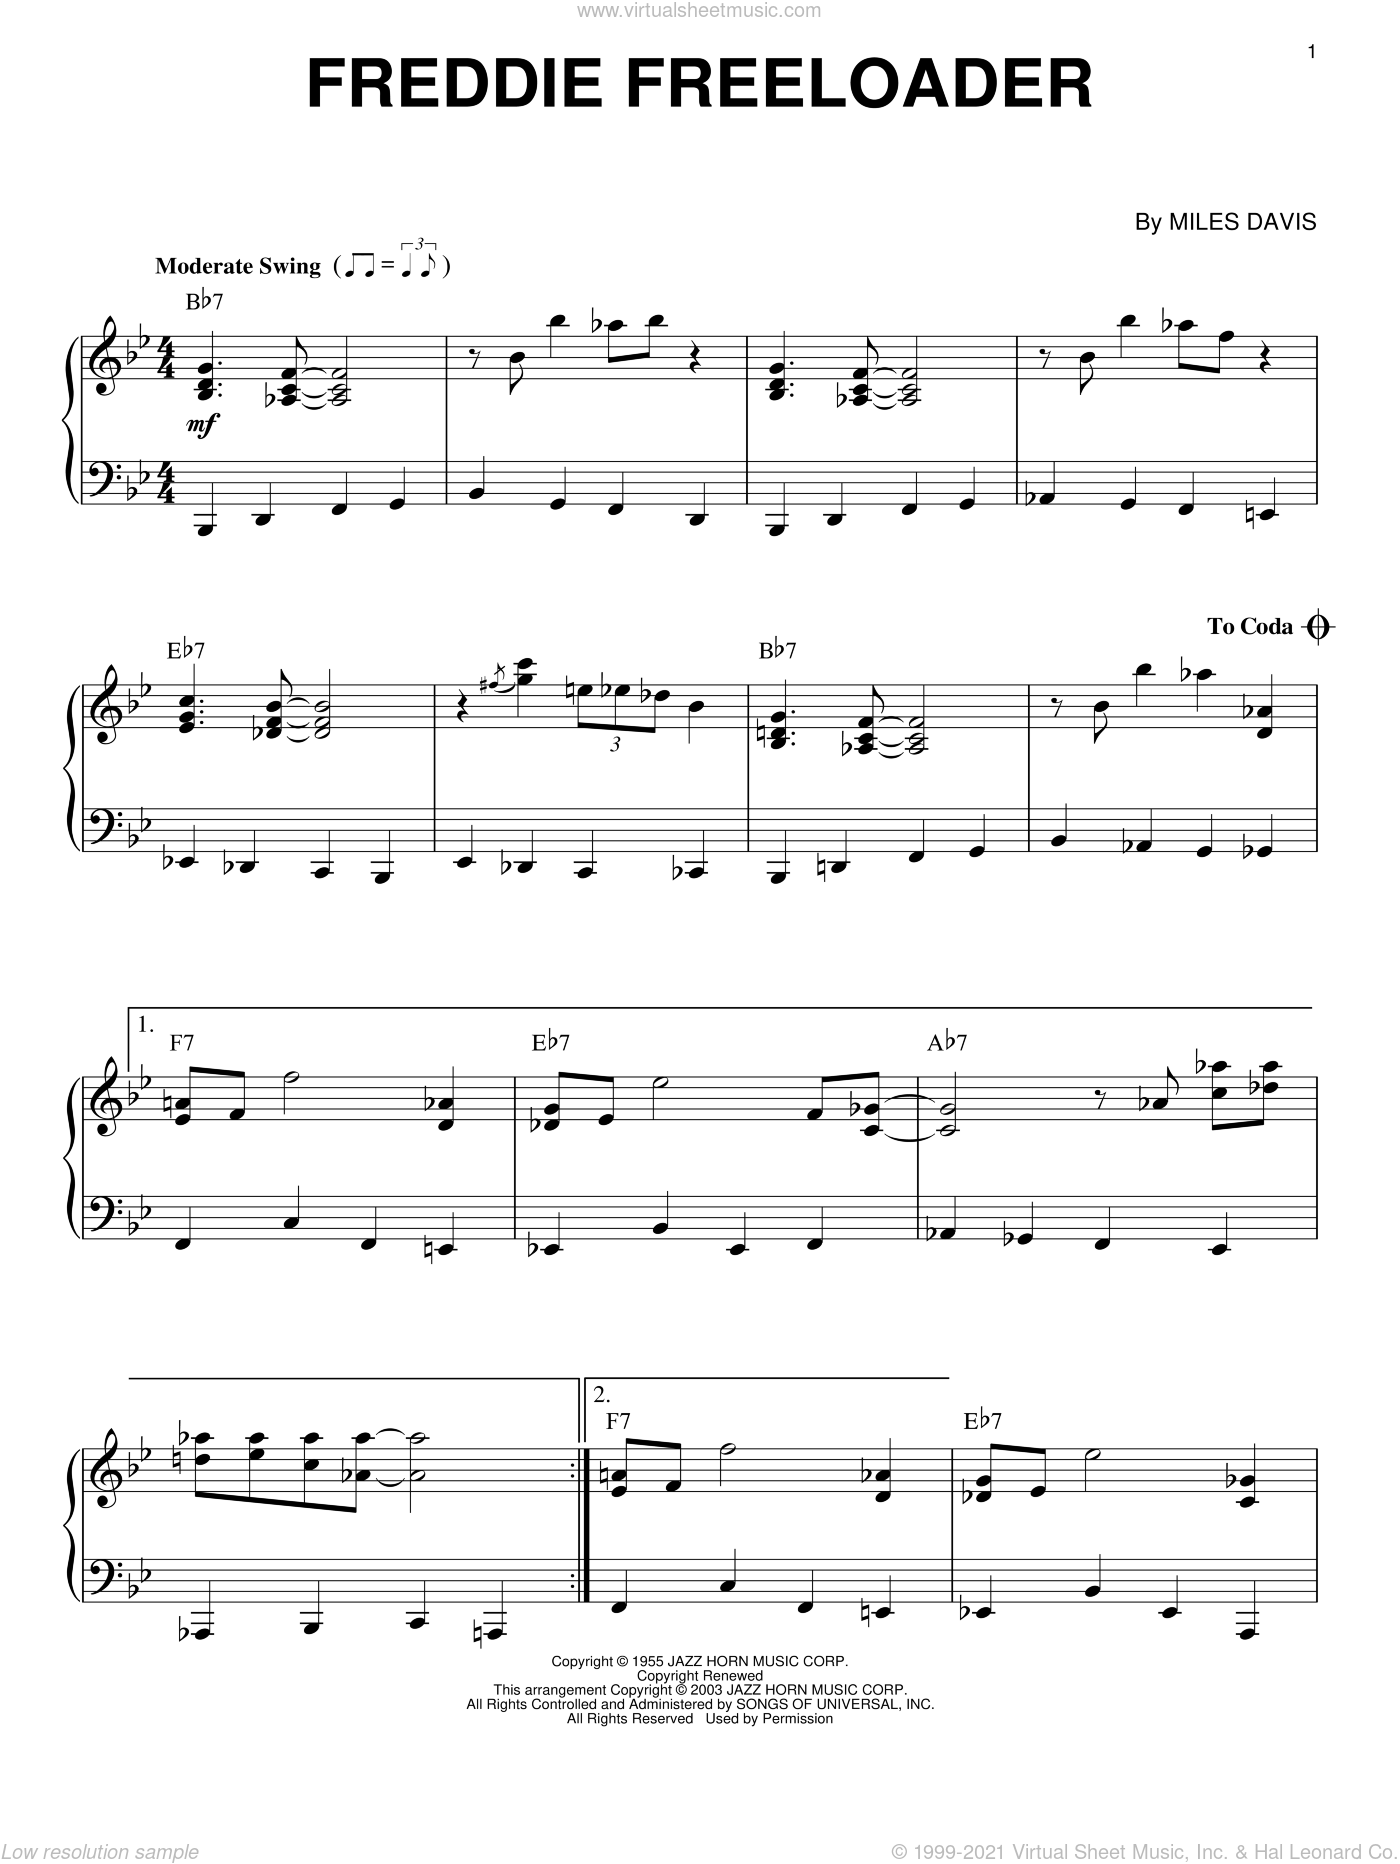 Freddie Freeloader sheet music for piano solo by Miles Davis, intermediate skill level